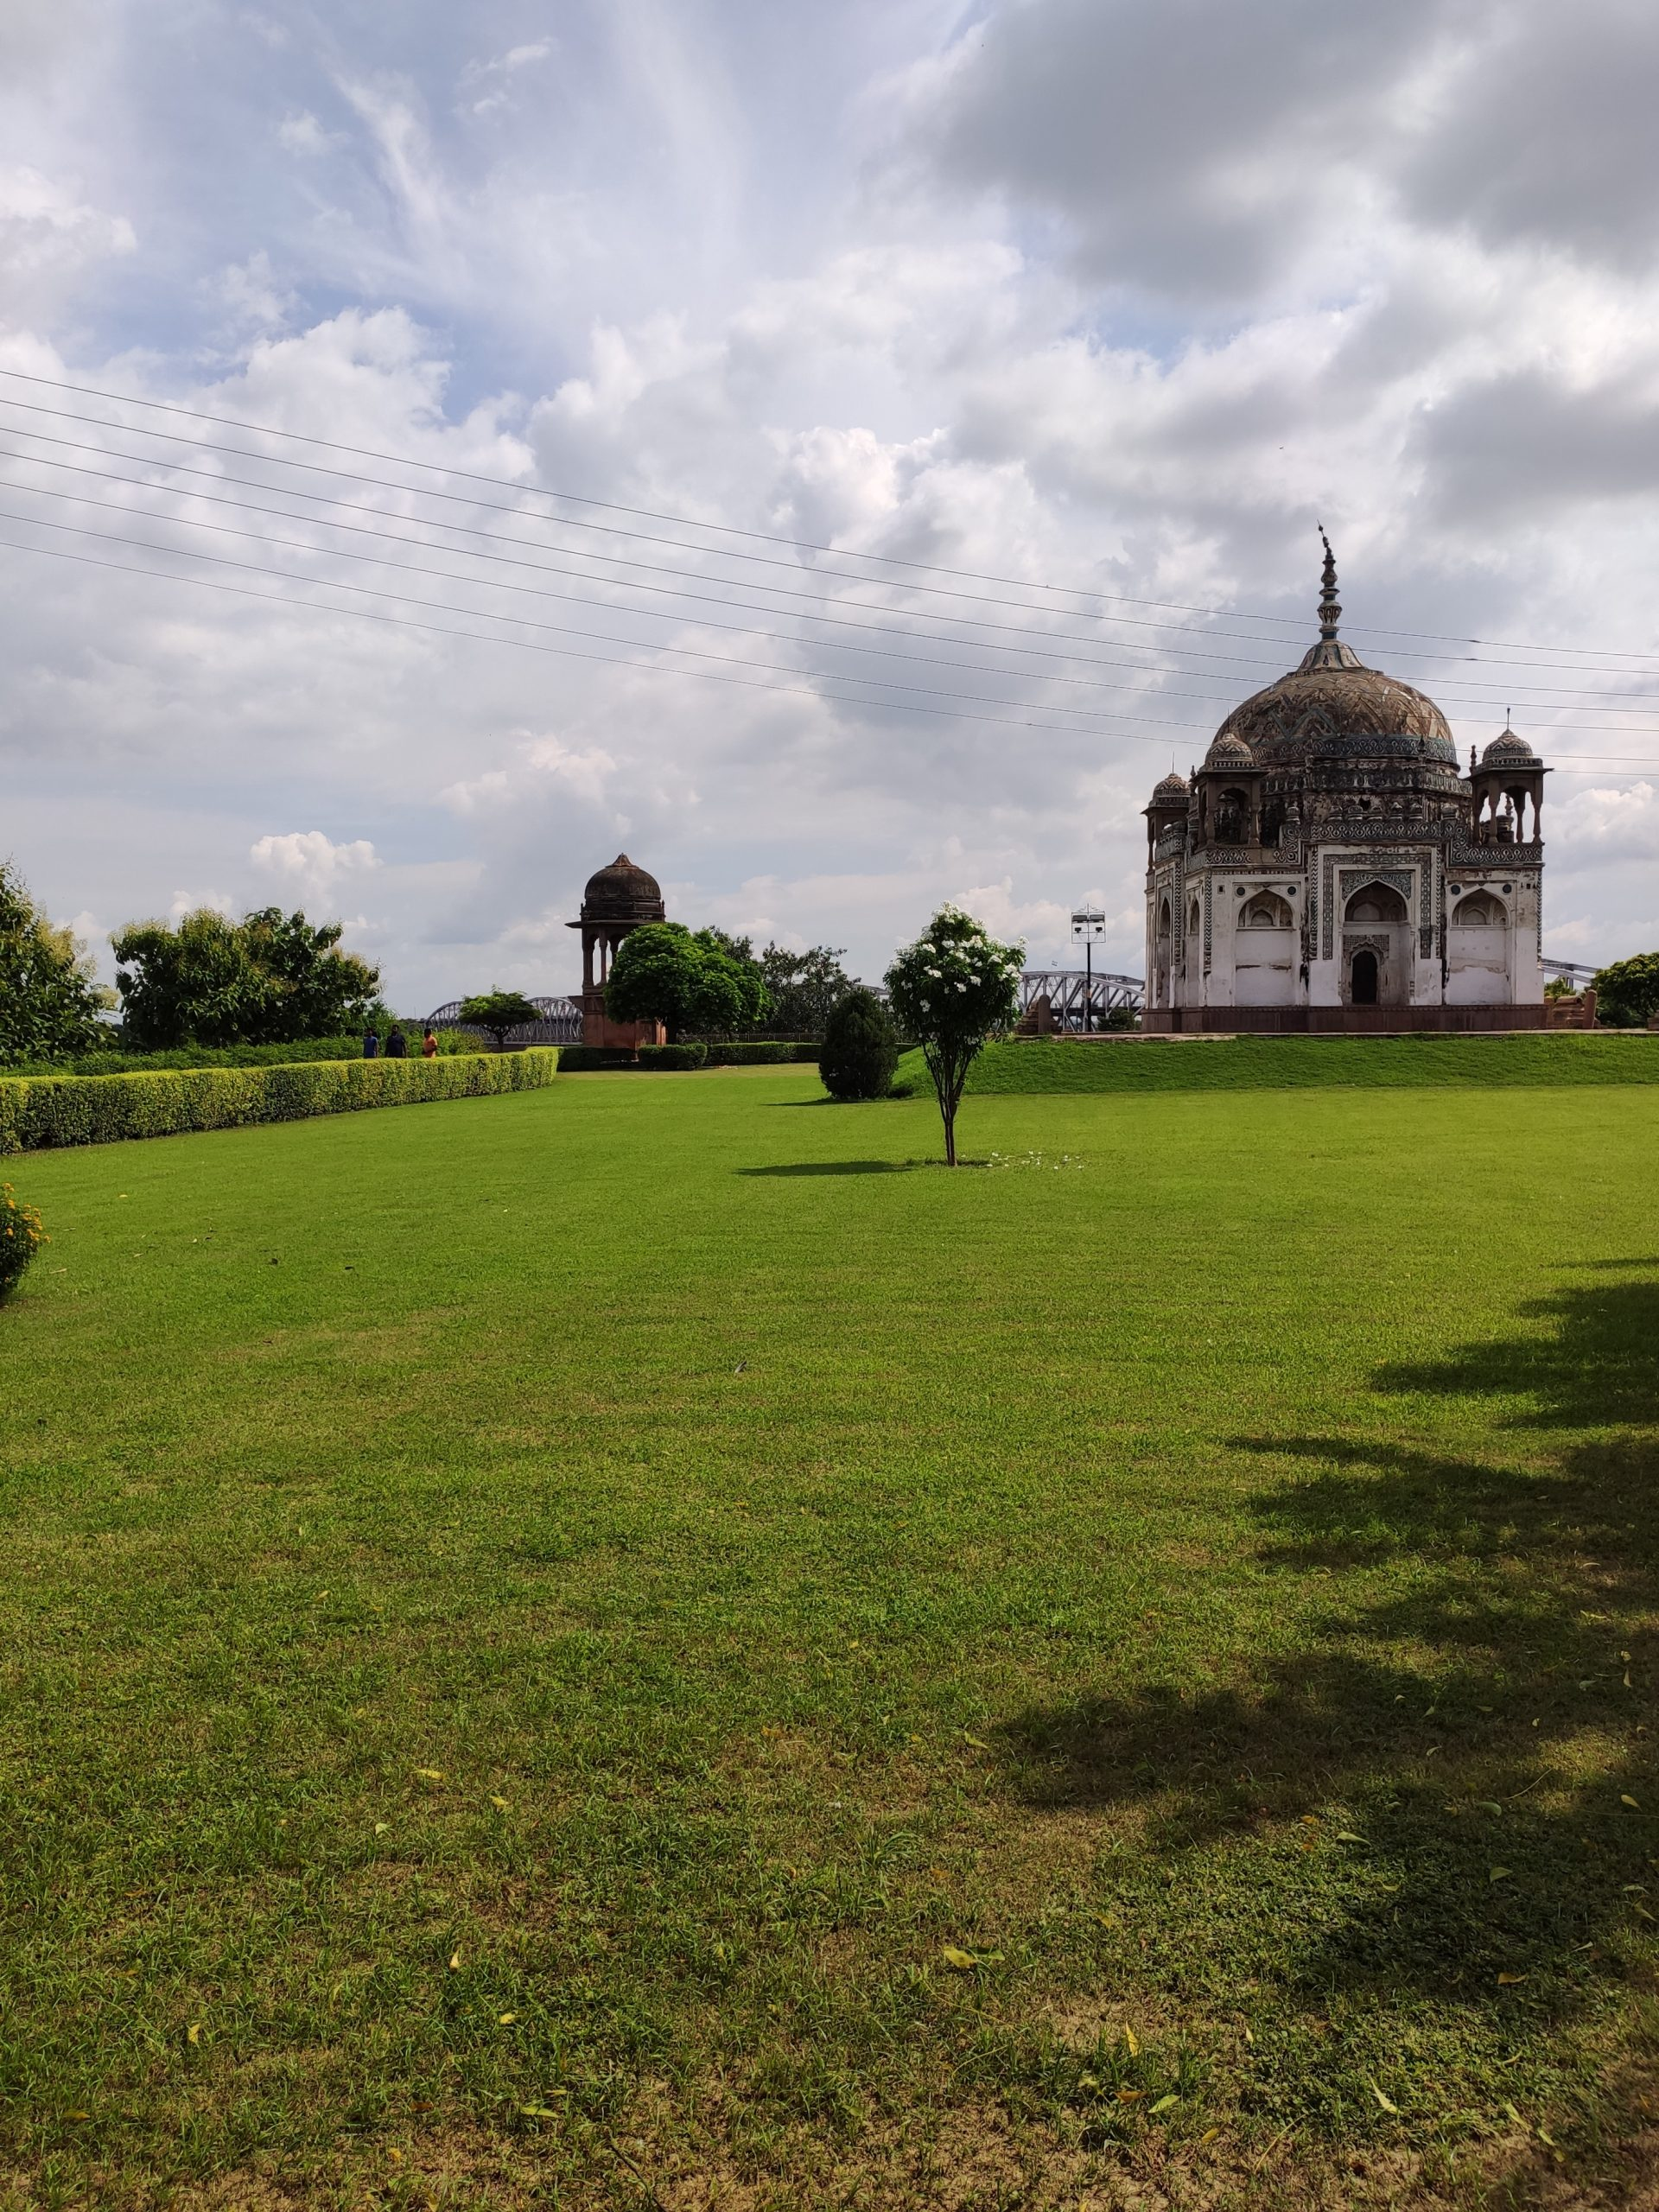 Lawn around a tomb